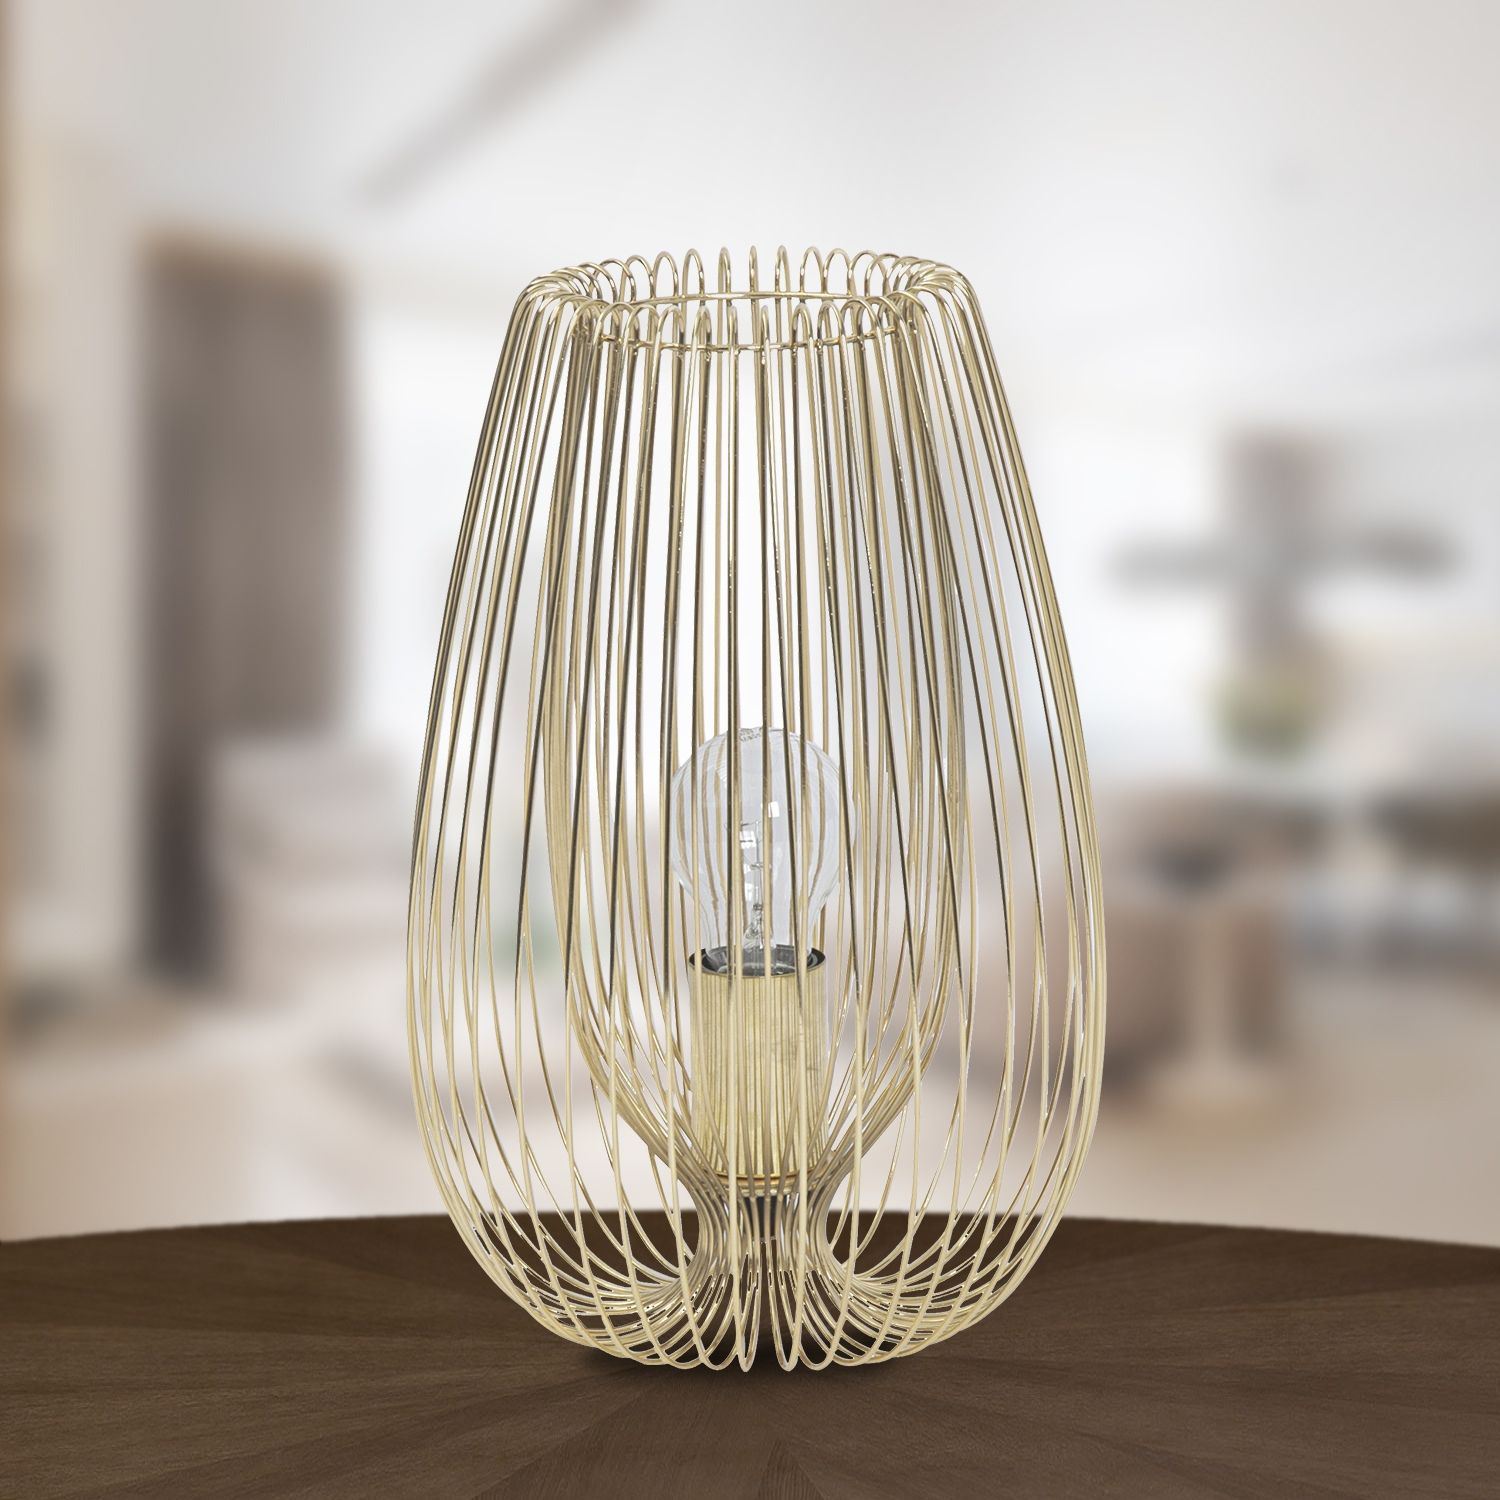 Contemporary Brushed Gold Metal Wire Table Lamp Bedside